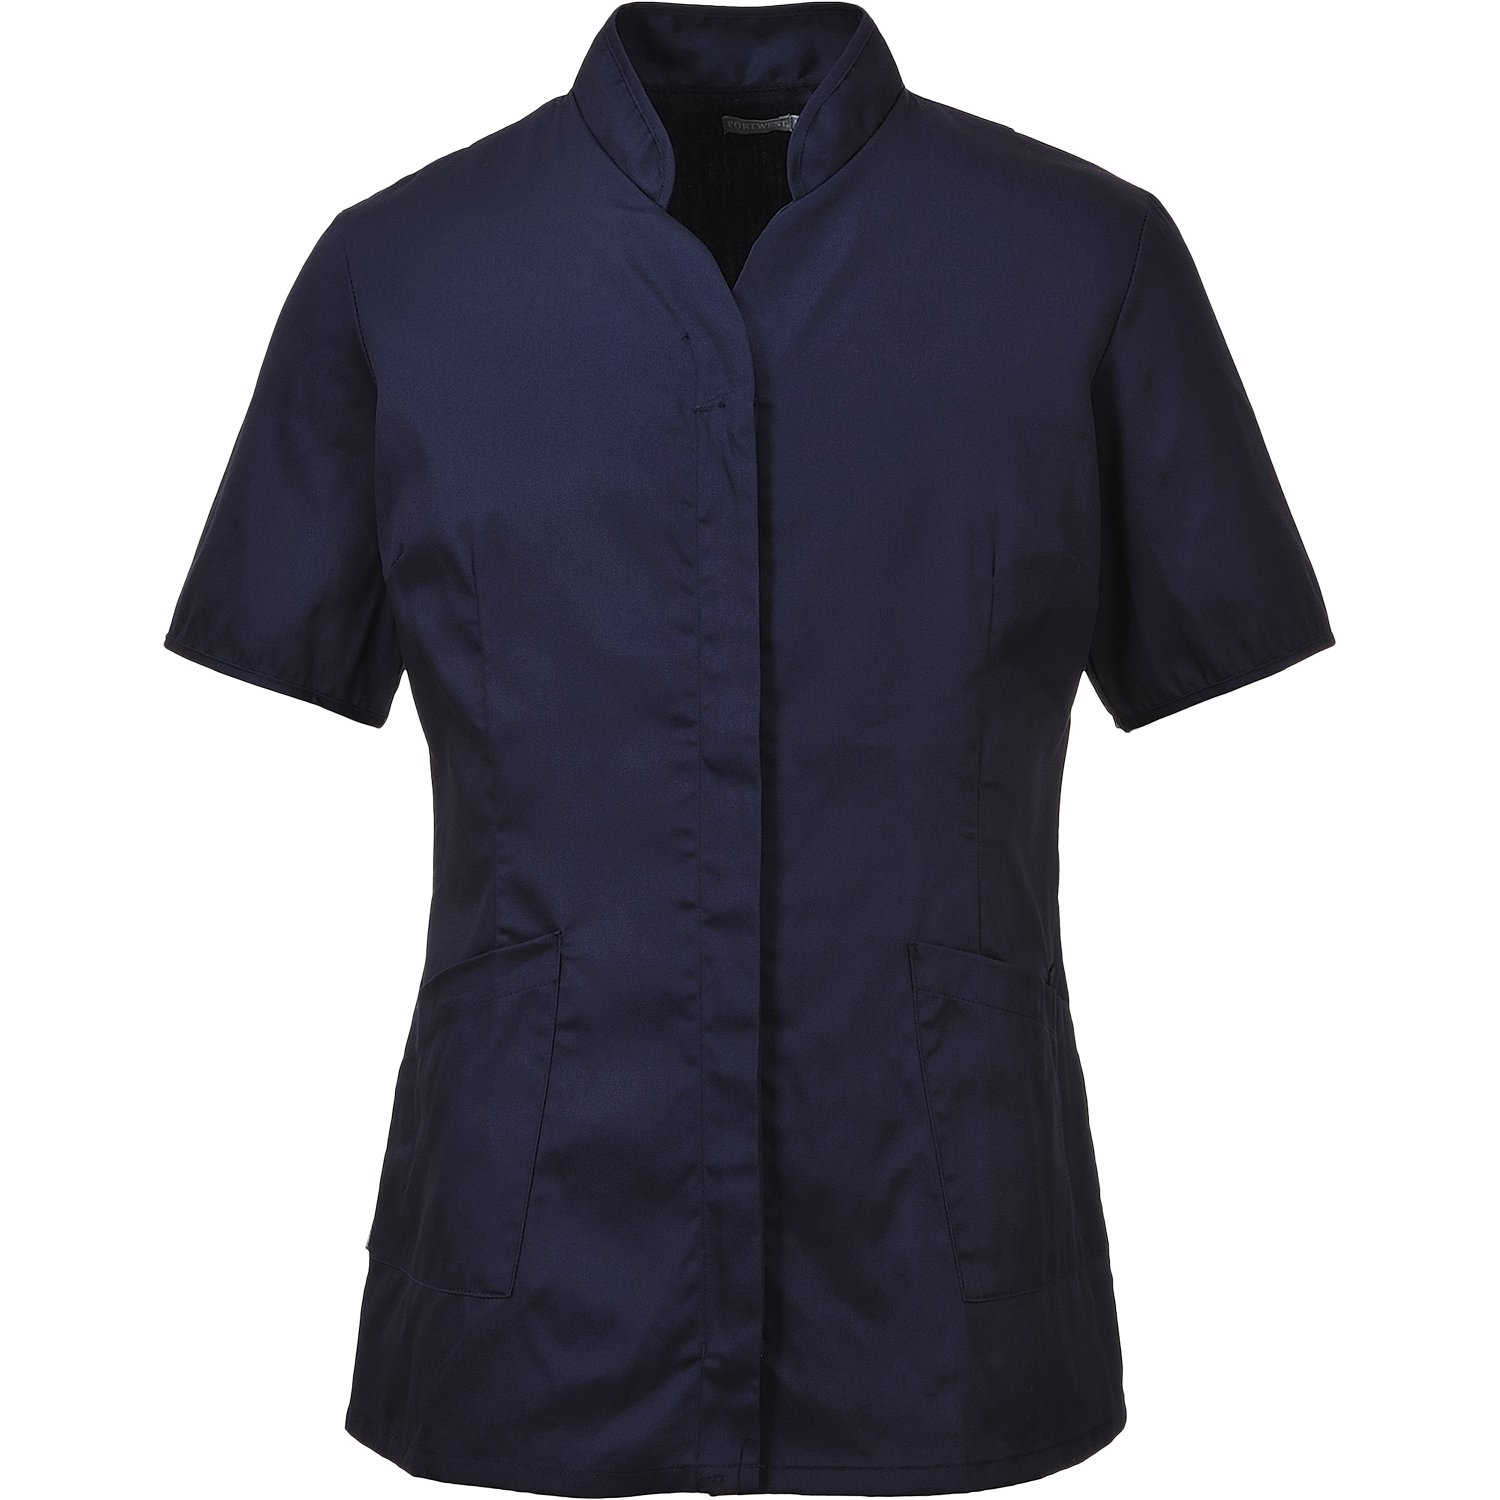 Portwest LW12NARXXL Series LW12 Ladies Premier Tunic, Regular, Size: 2X-Large, Navy Portwest Clothing Ltd